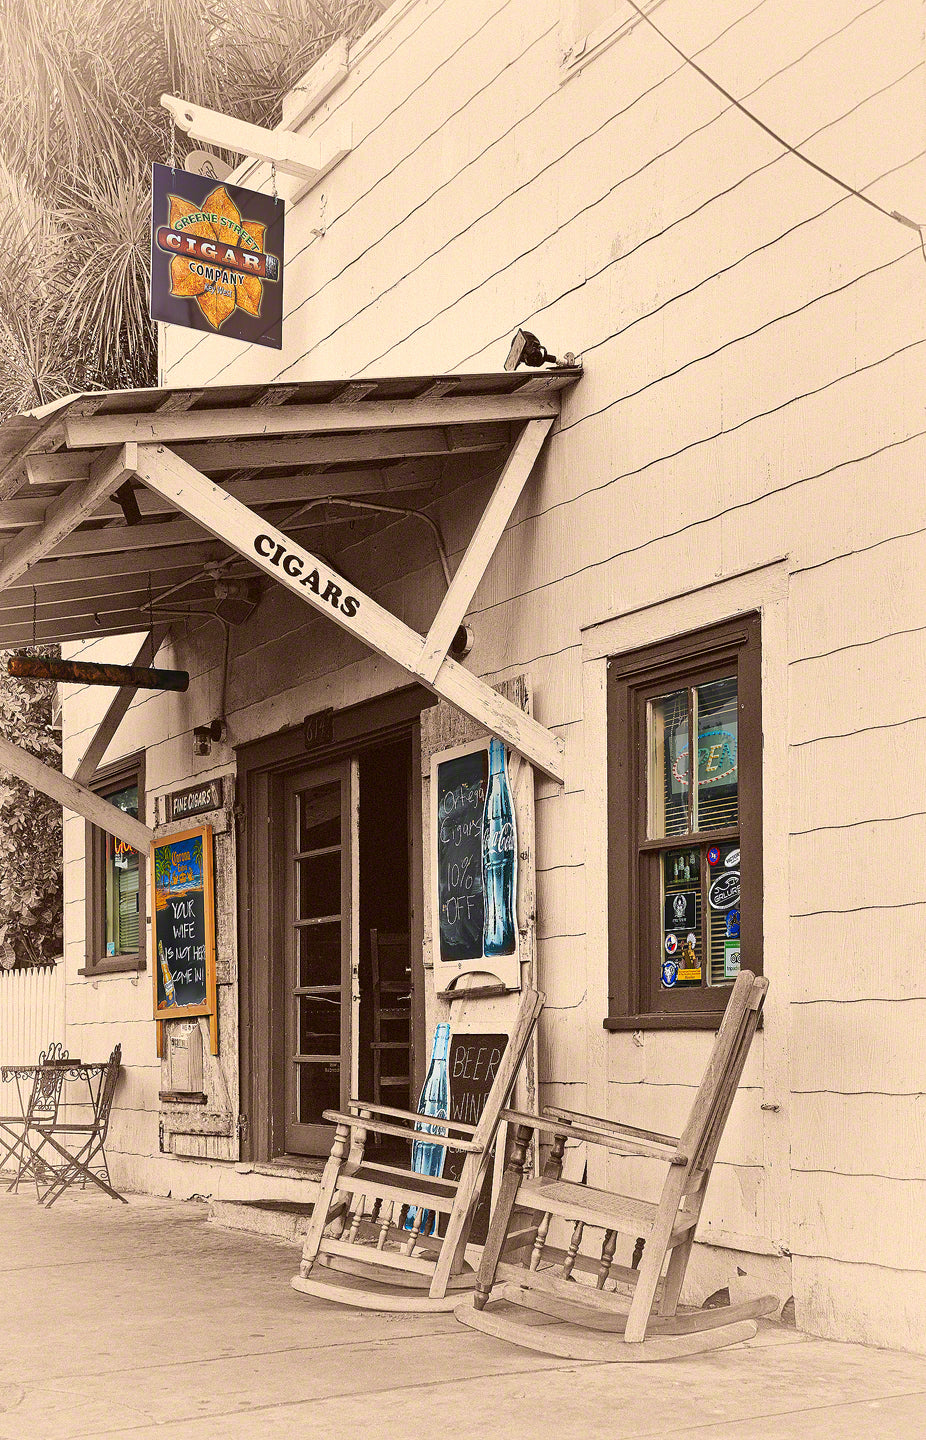 A Fine Art Photograph by Mike Ring of Green Street Cigar shop in Key West